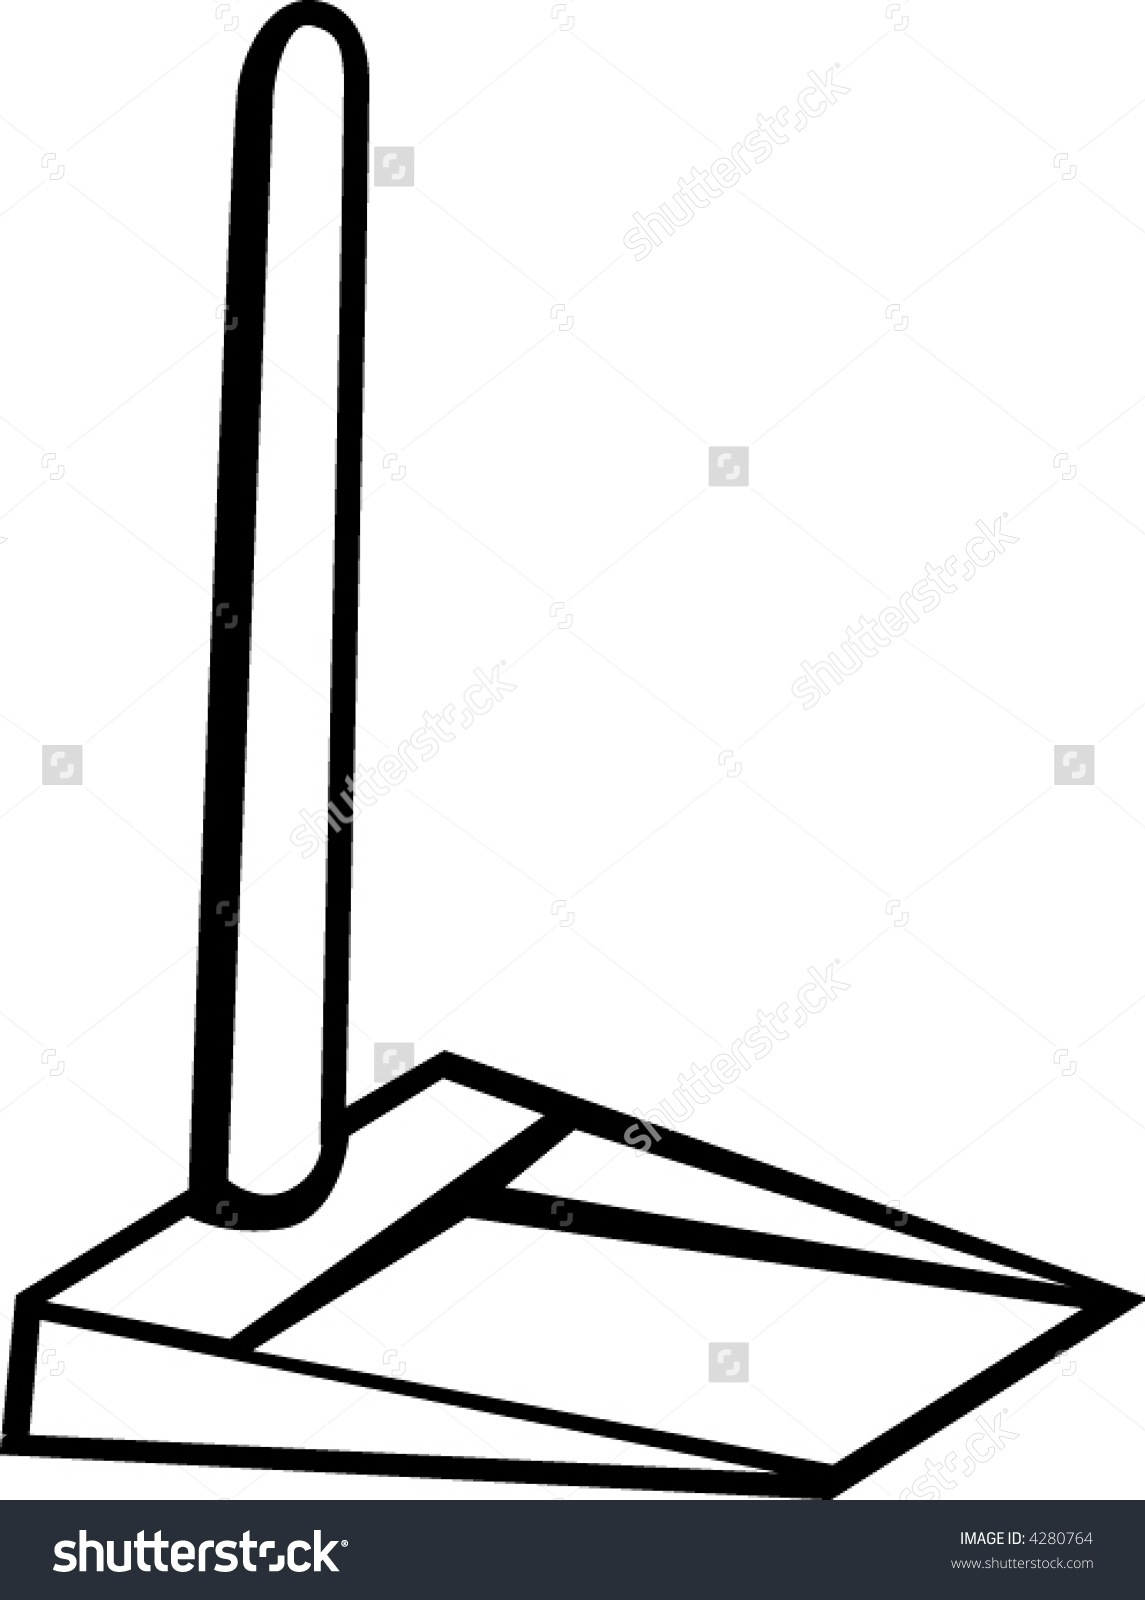 Broom clipart dustpan, Broom dustpan Transparent FREE for.